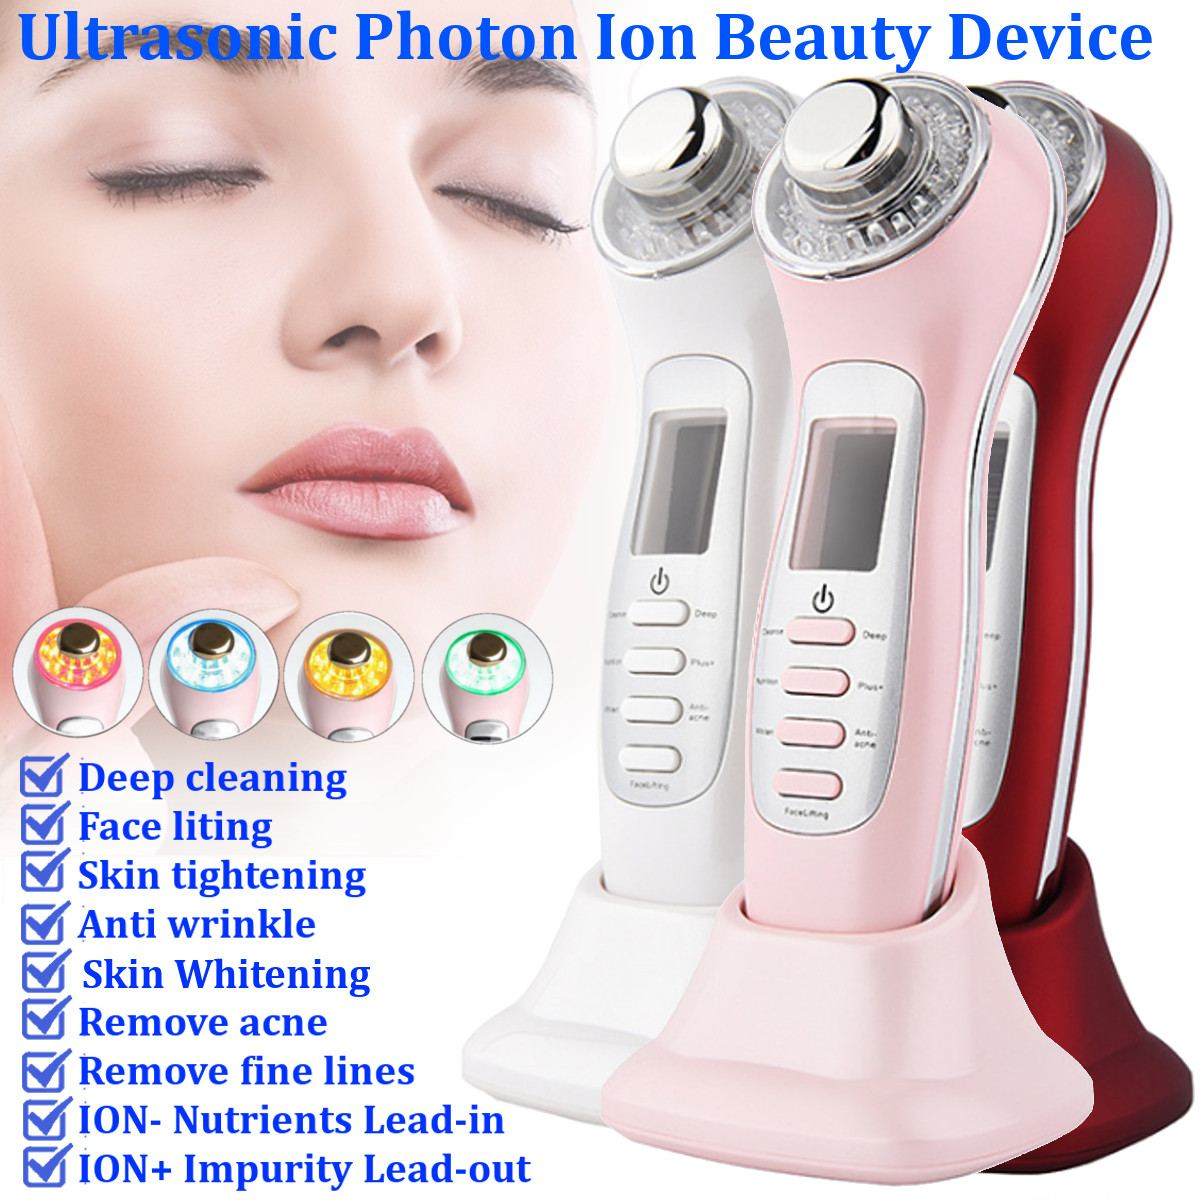 7 in 1 Ultrasonic Photon Therapy Face Deep Cleansing Massager Lifting Rejuvenation Powered Facial Skin Care Beauty Device New7 in 1 Ultrasonic Photon Therapy Face Deep Cleansing Massager Lifting Rejuvenation Powered Facial Skin Care Beauty Device New